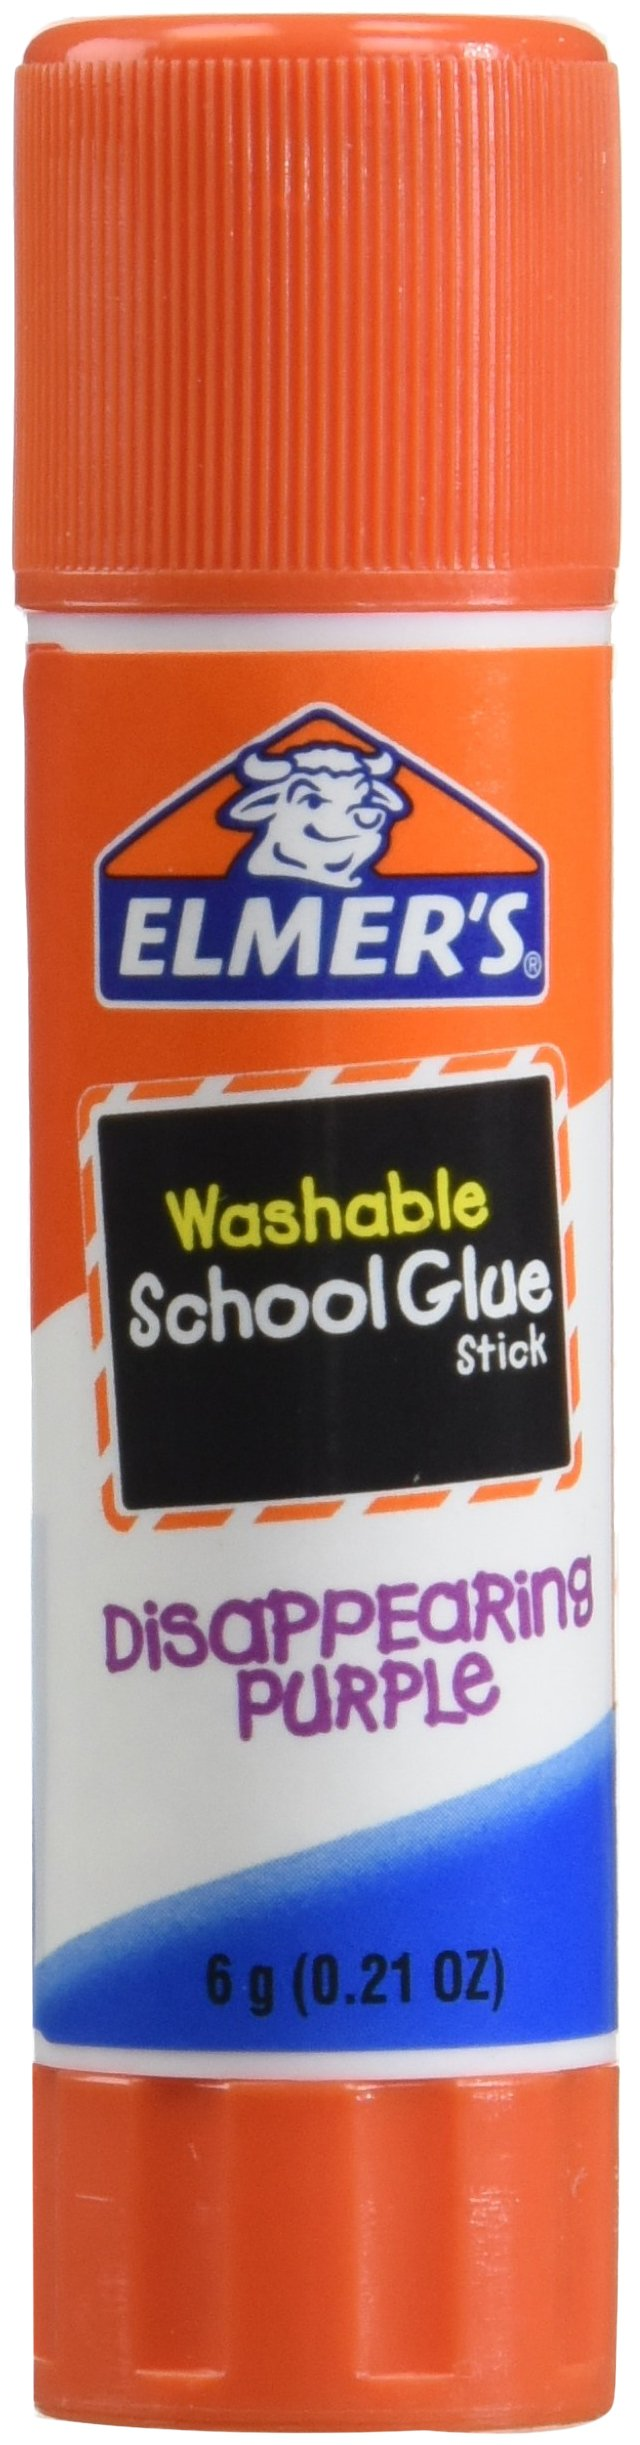 Elmer's Disappearing Purple School Glue Sticks, 0.21 Ounce Each, Pack of 4